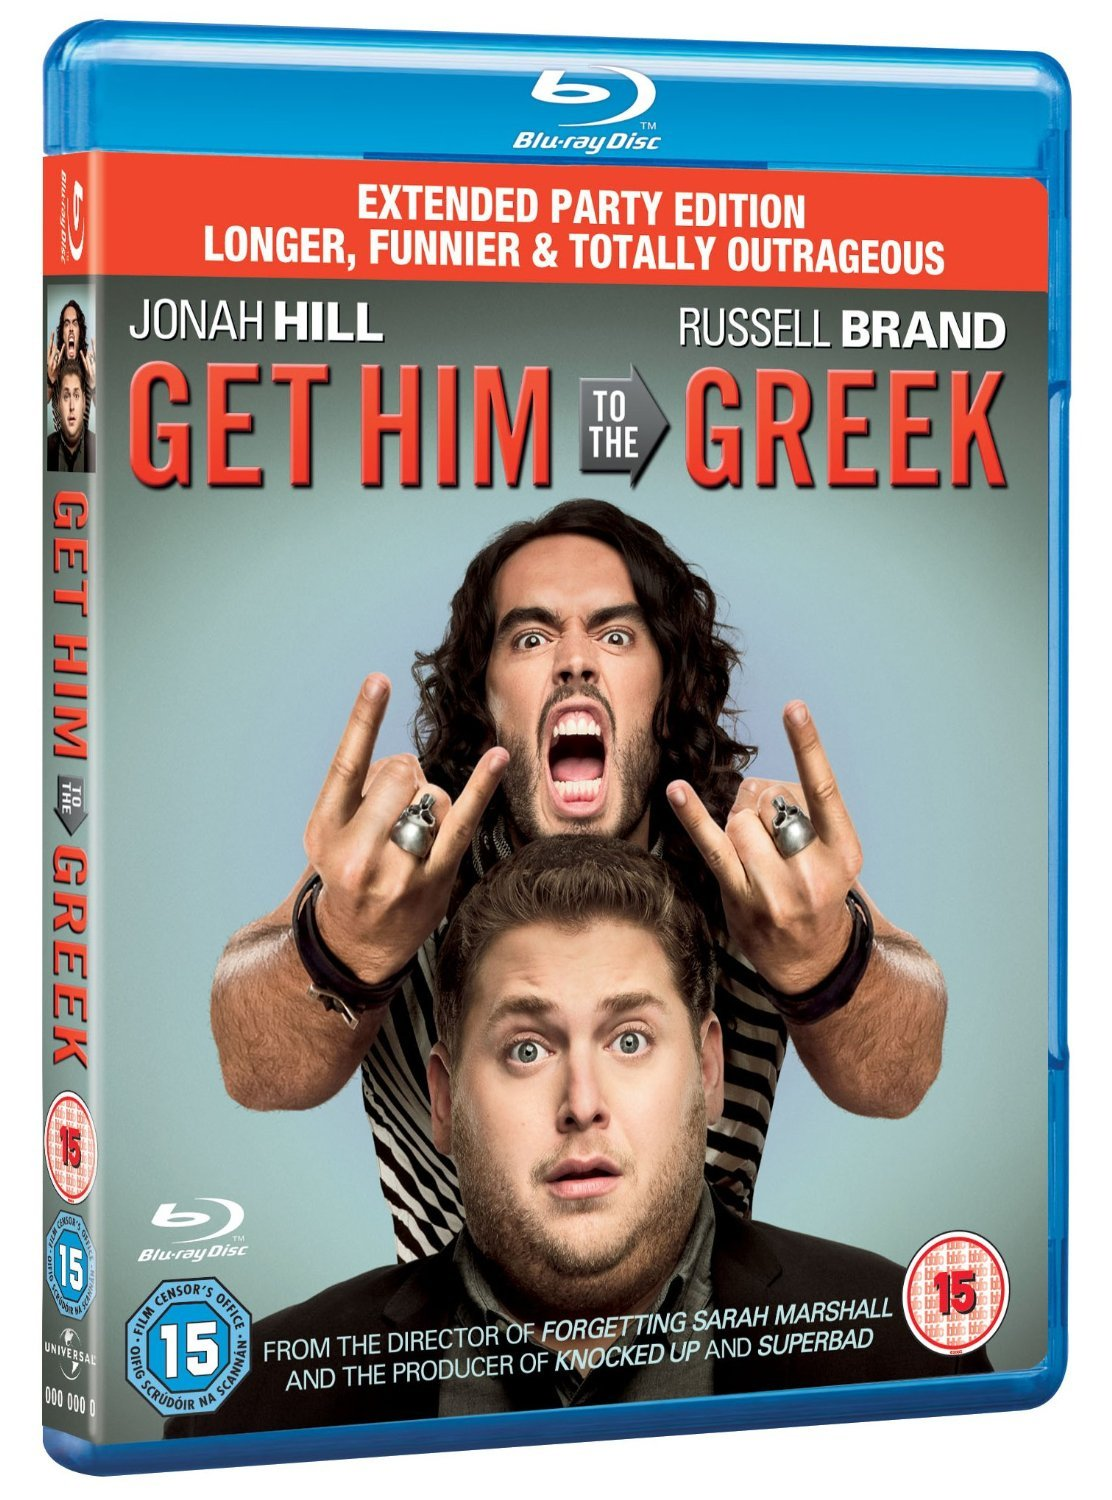 Get Him to the Greek - Extended Party Edition [Blu-ray]